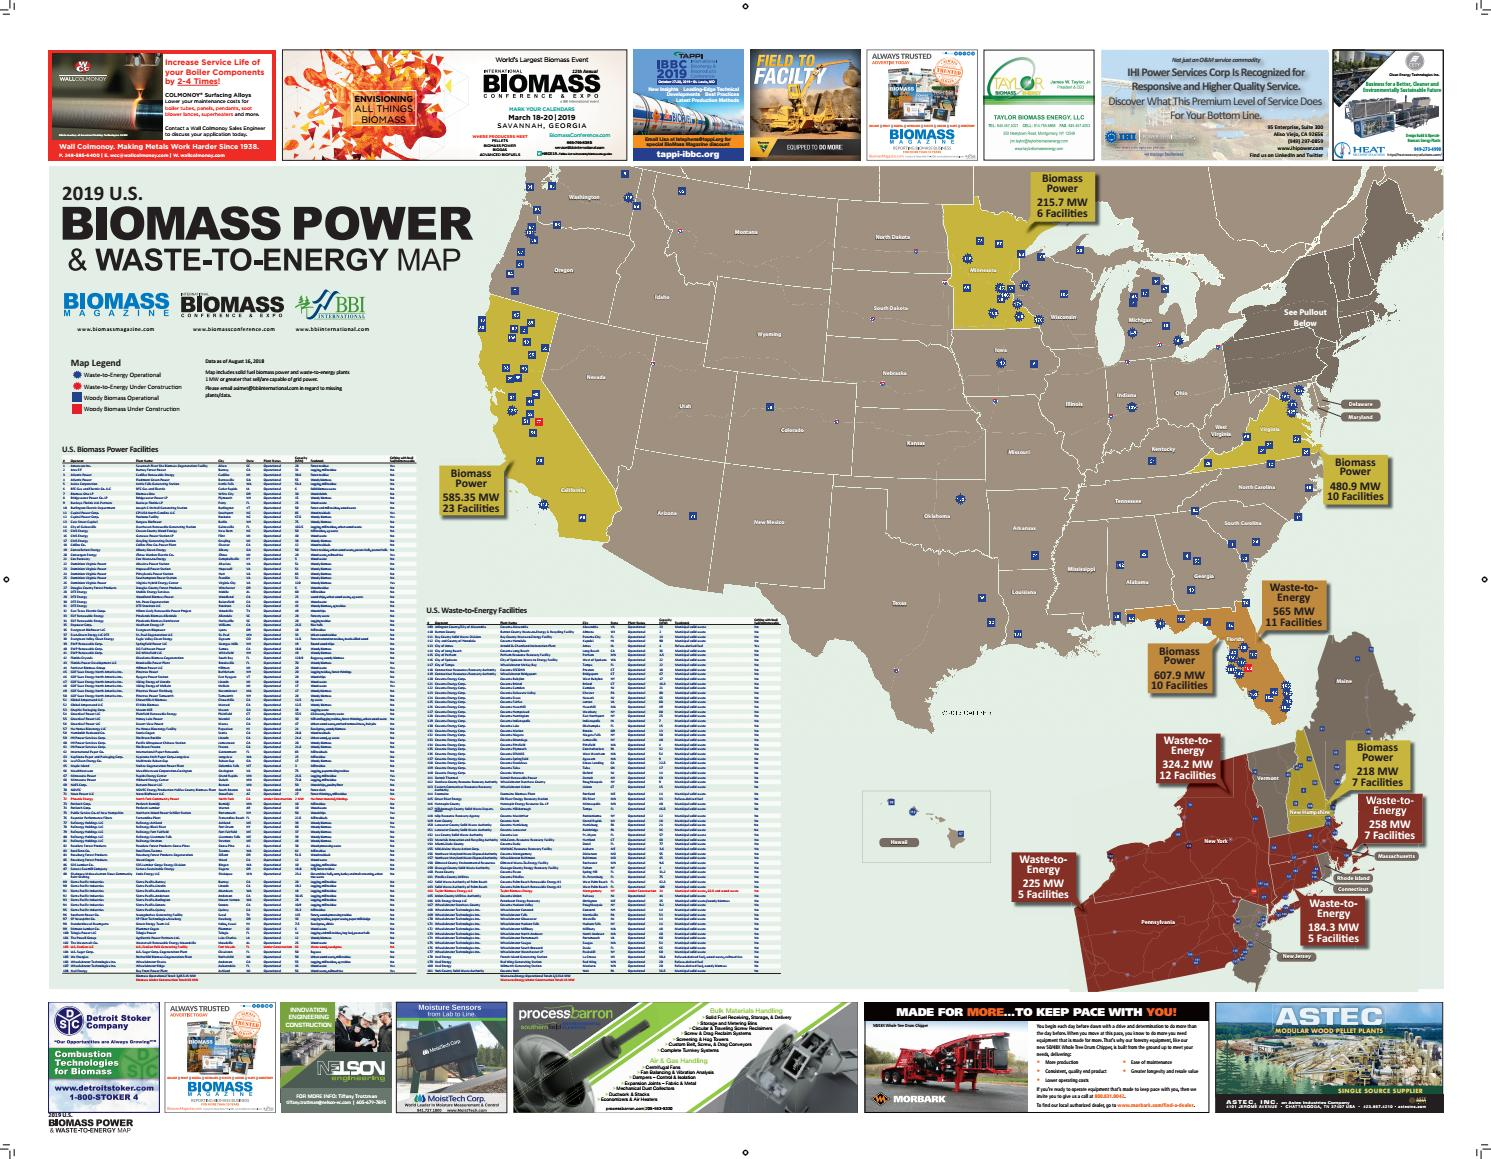 2019 Biomass Power & Waste-to-Energy Map by BBI